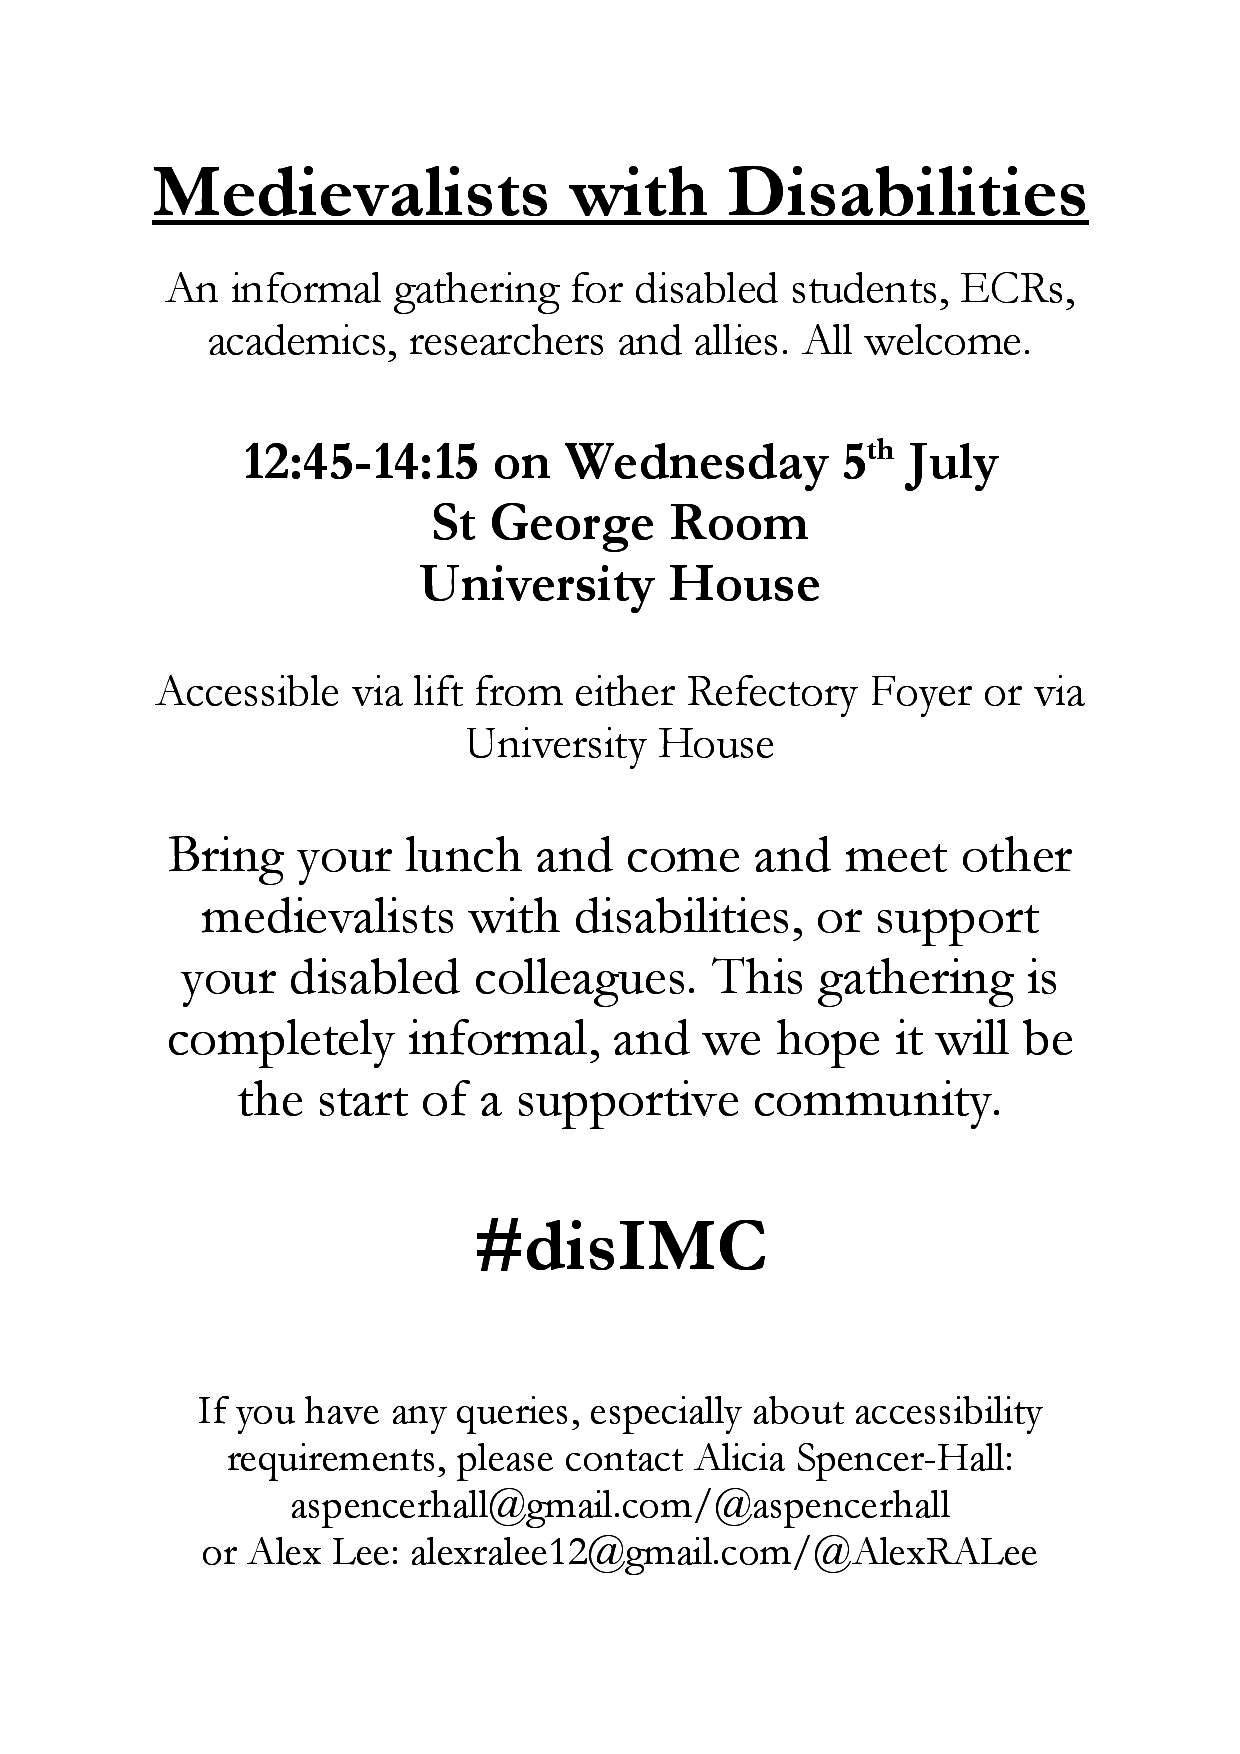 Please feel free to share this #disIMC poster!